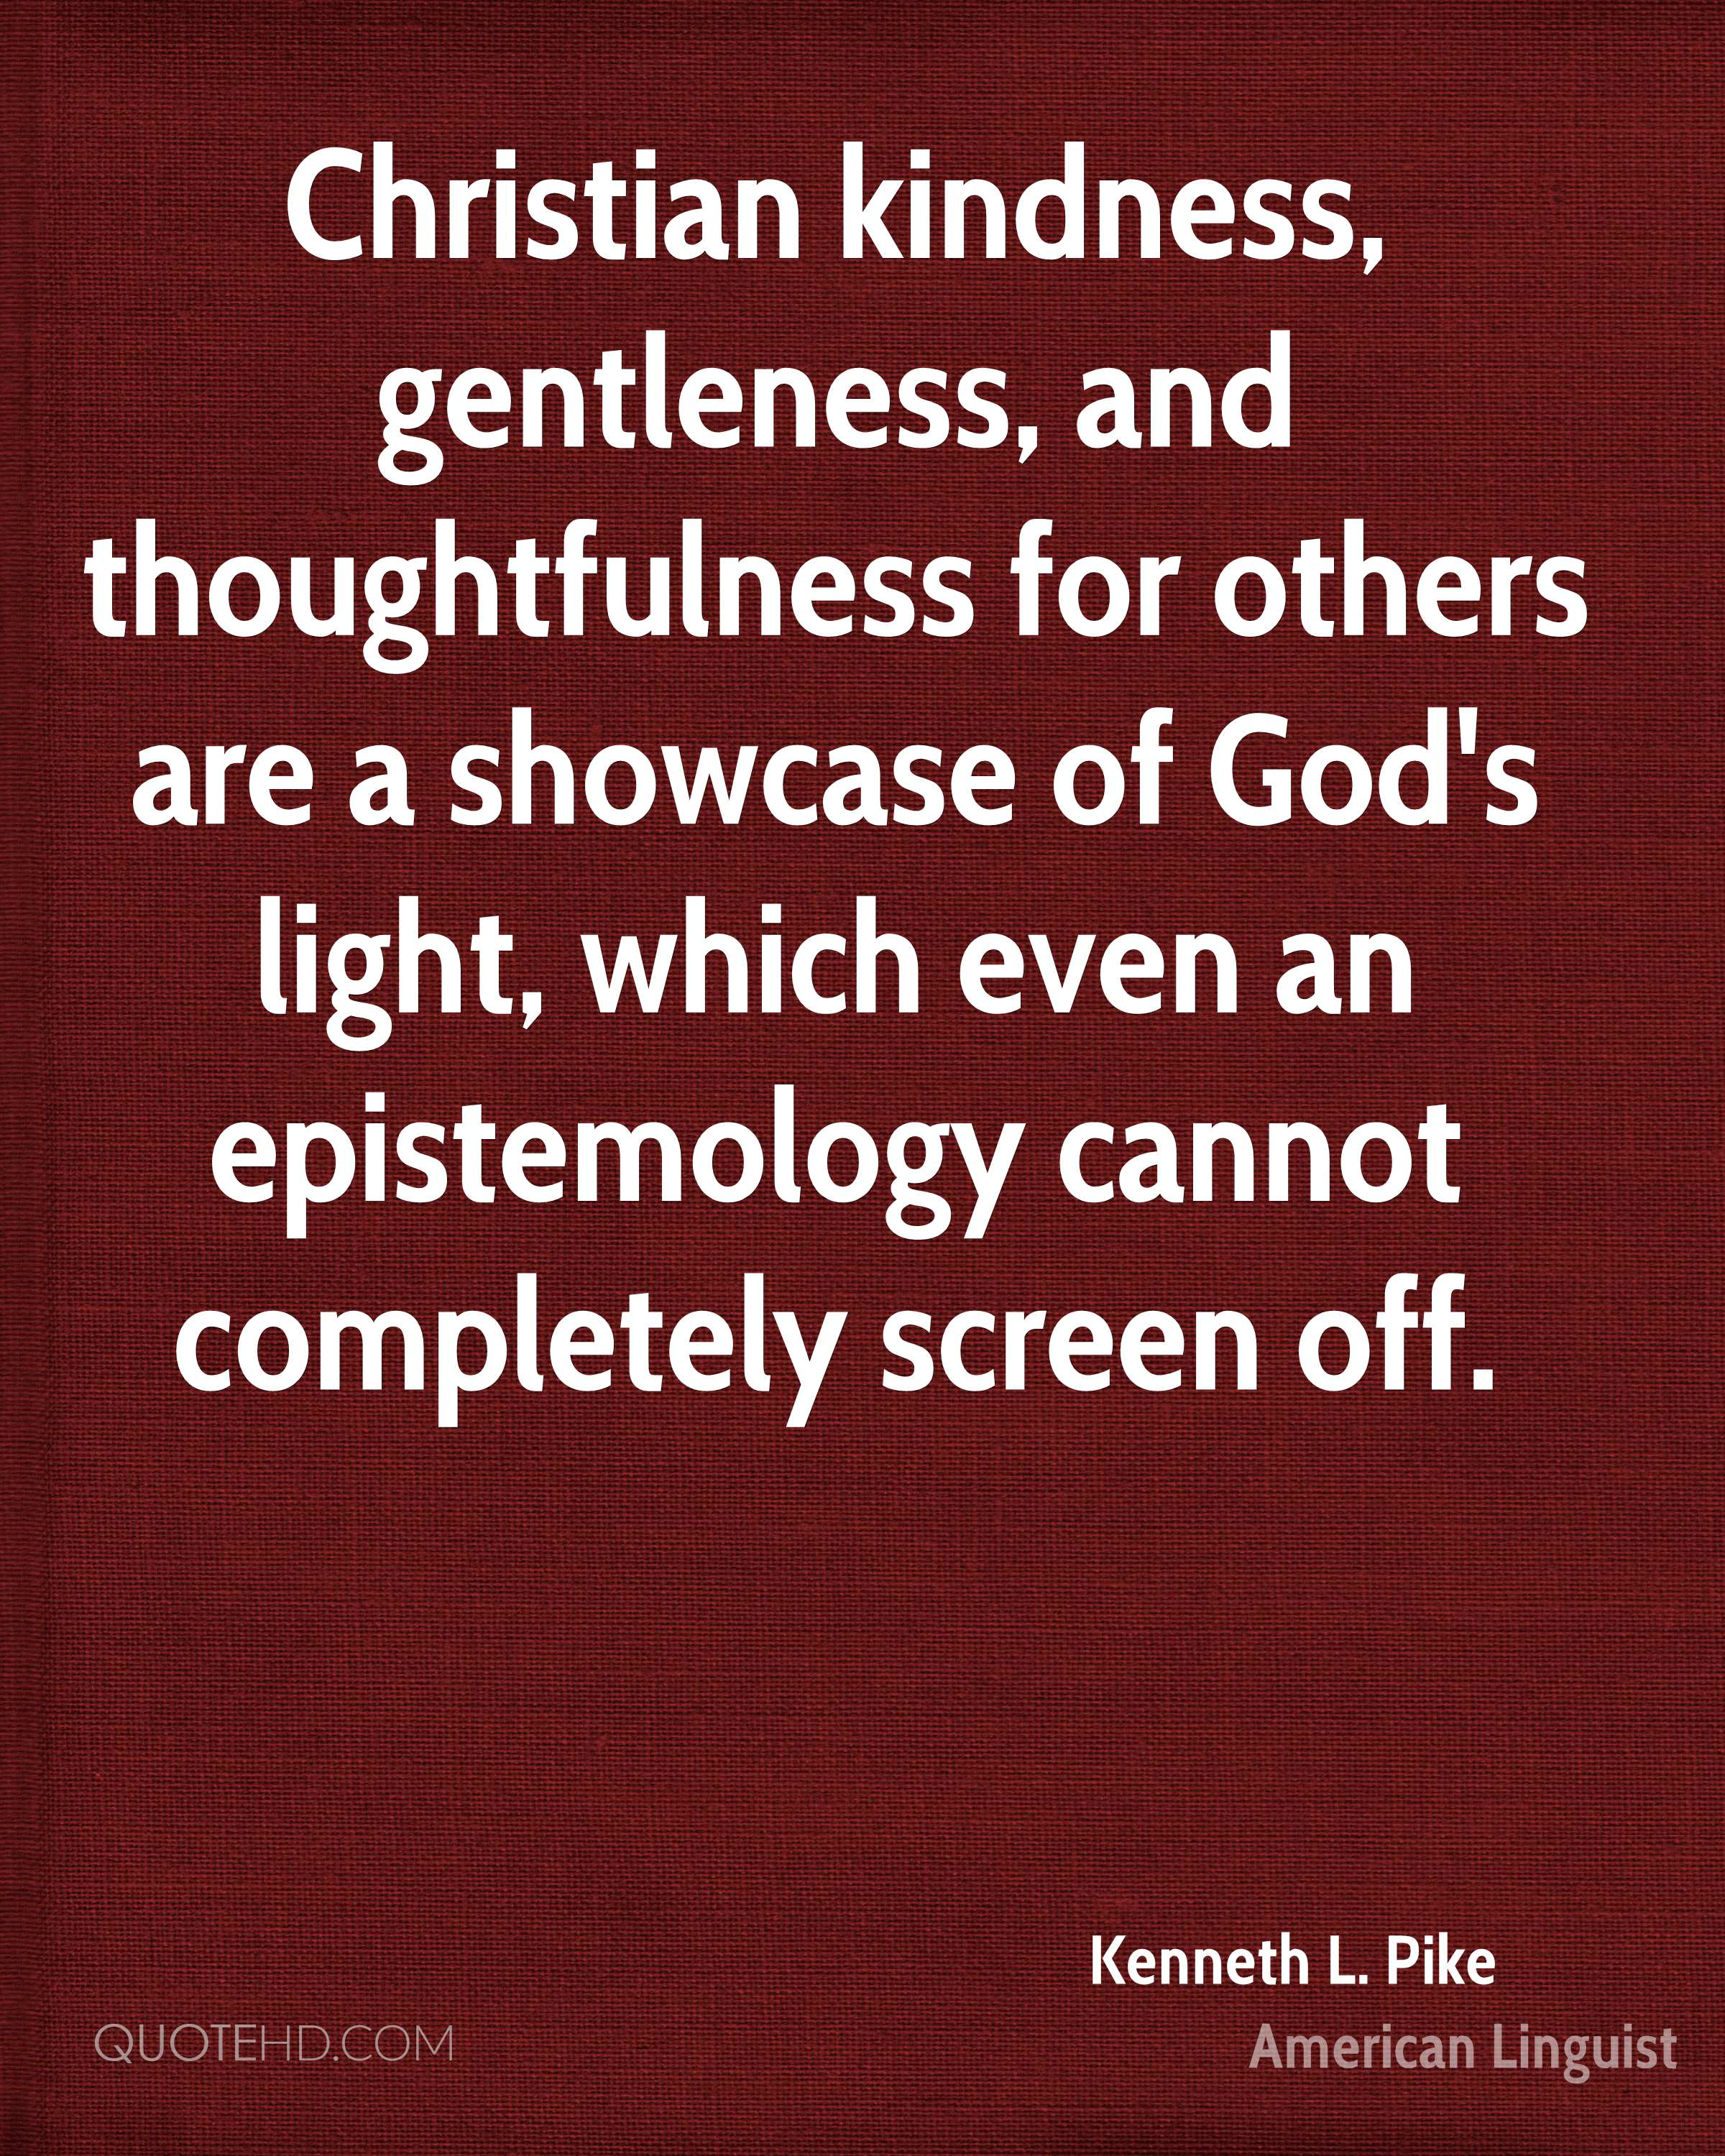 Christian kindness, gentleness, and thoughtfulness for others are a showcase of God's light, which even an epistemology cannot completely screen off.